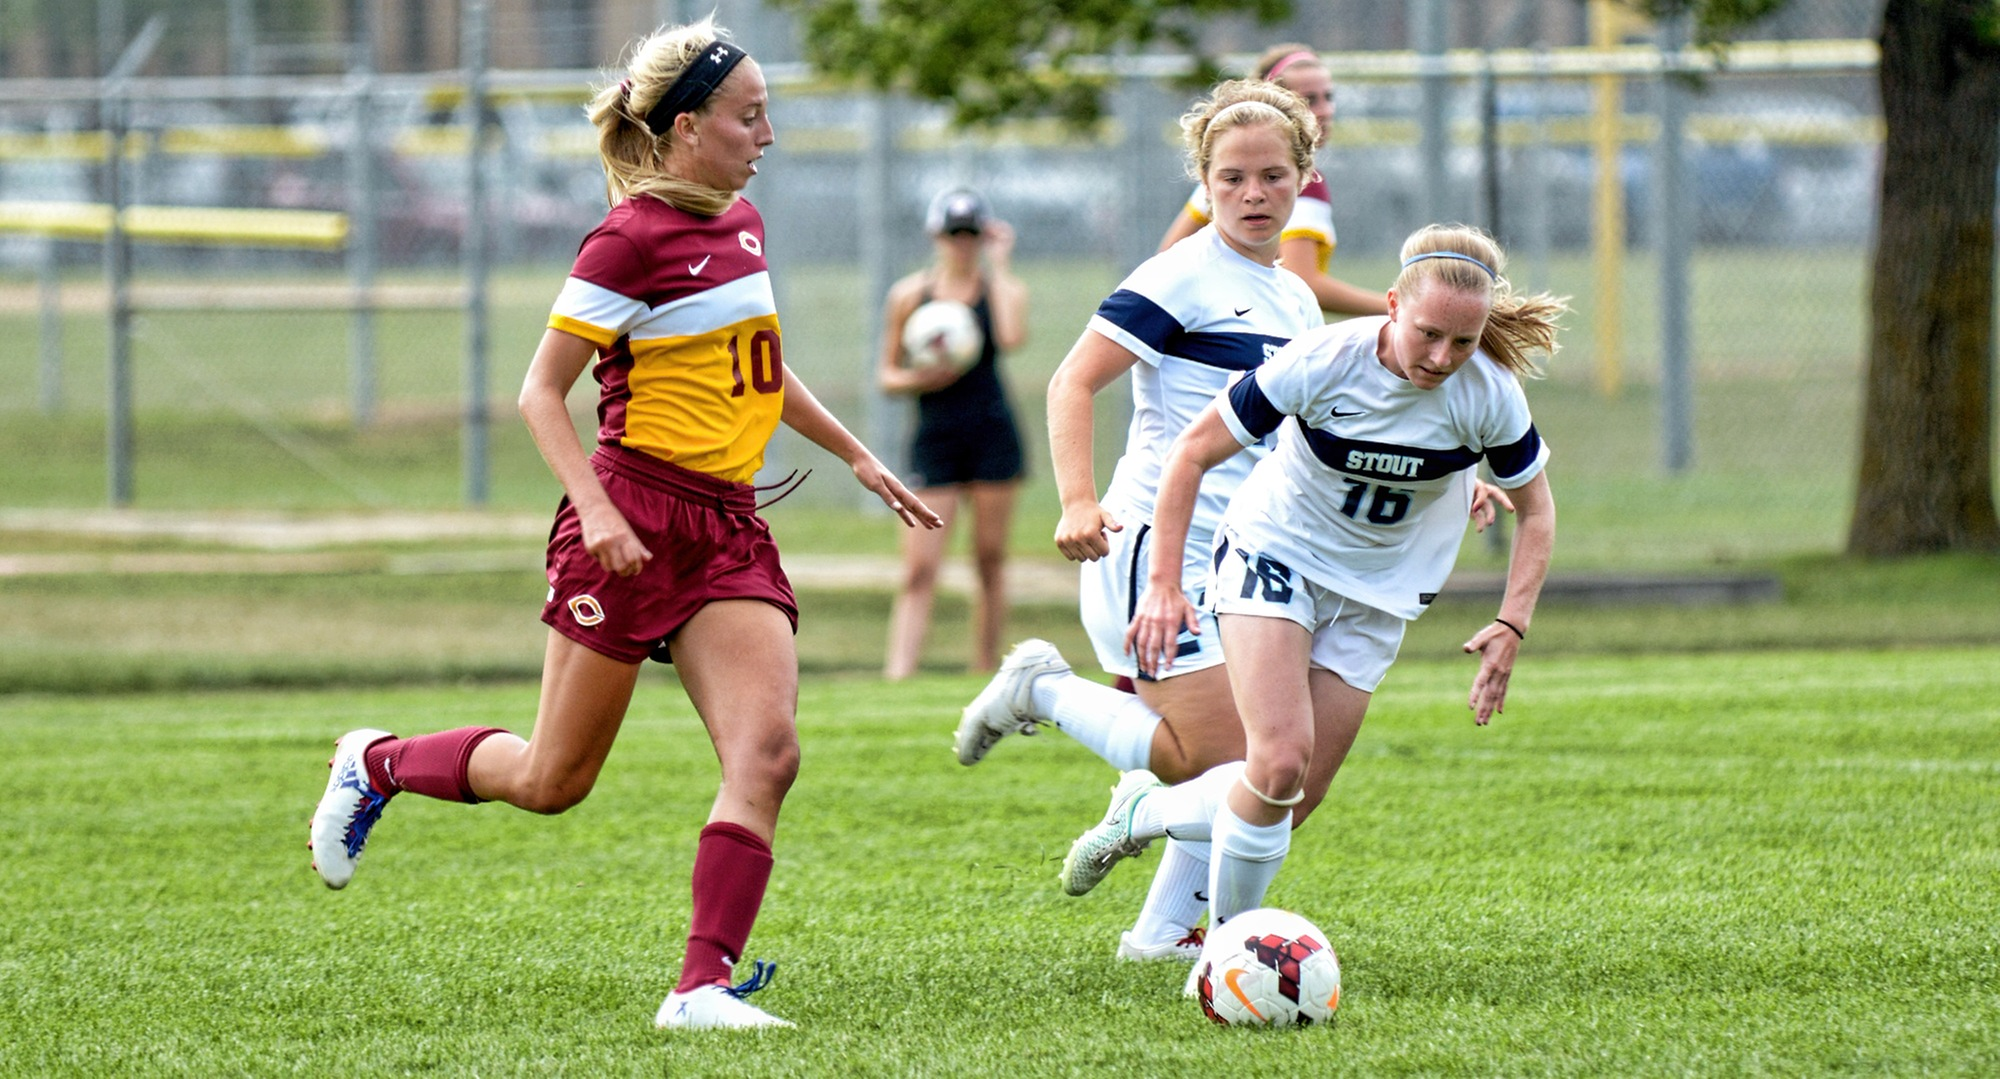 Senior Kayla Dostal led Concordia with two shots in the Cobbers' 0-0 2OT tie at Wis.-Stout.